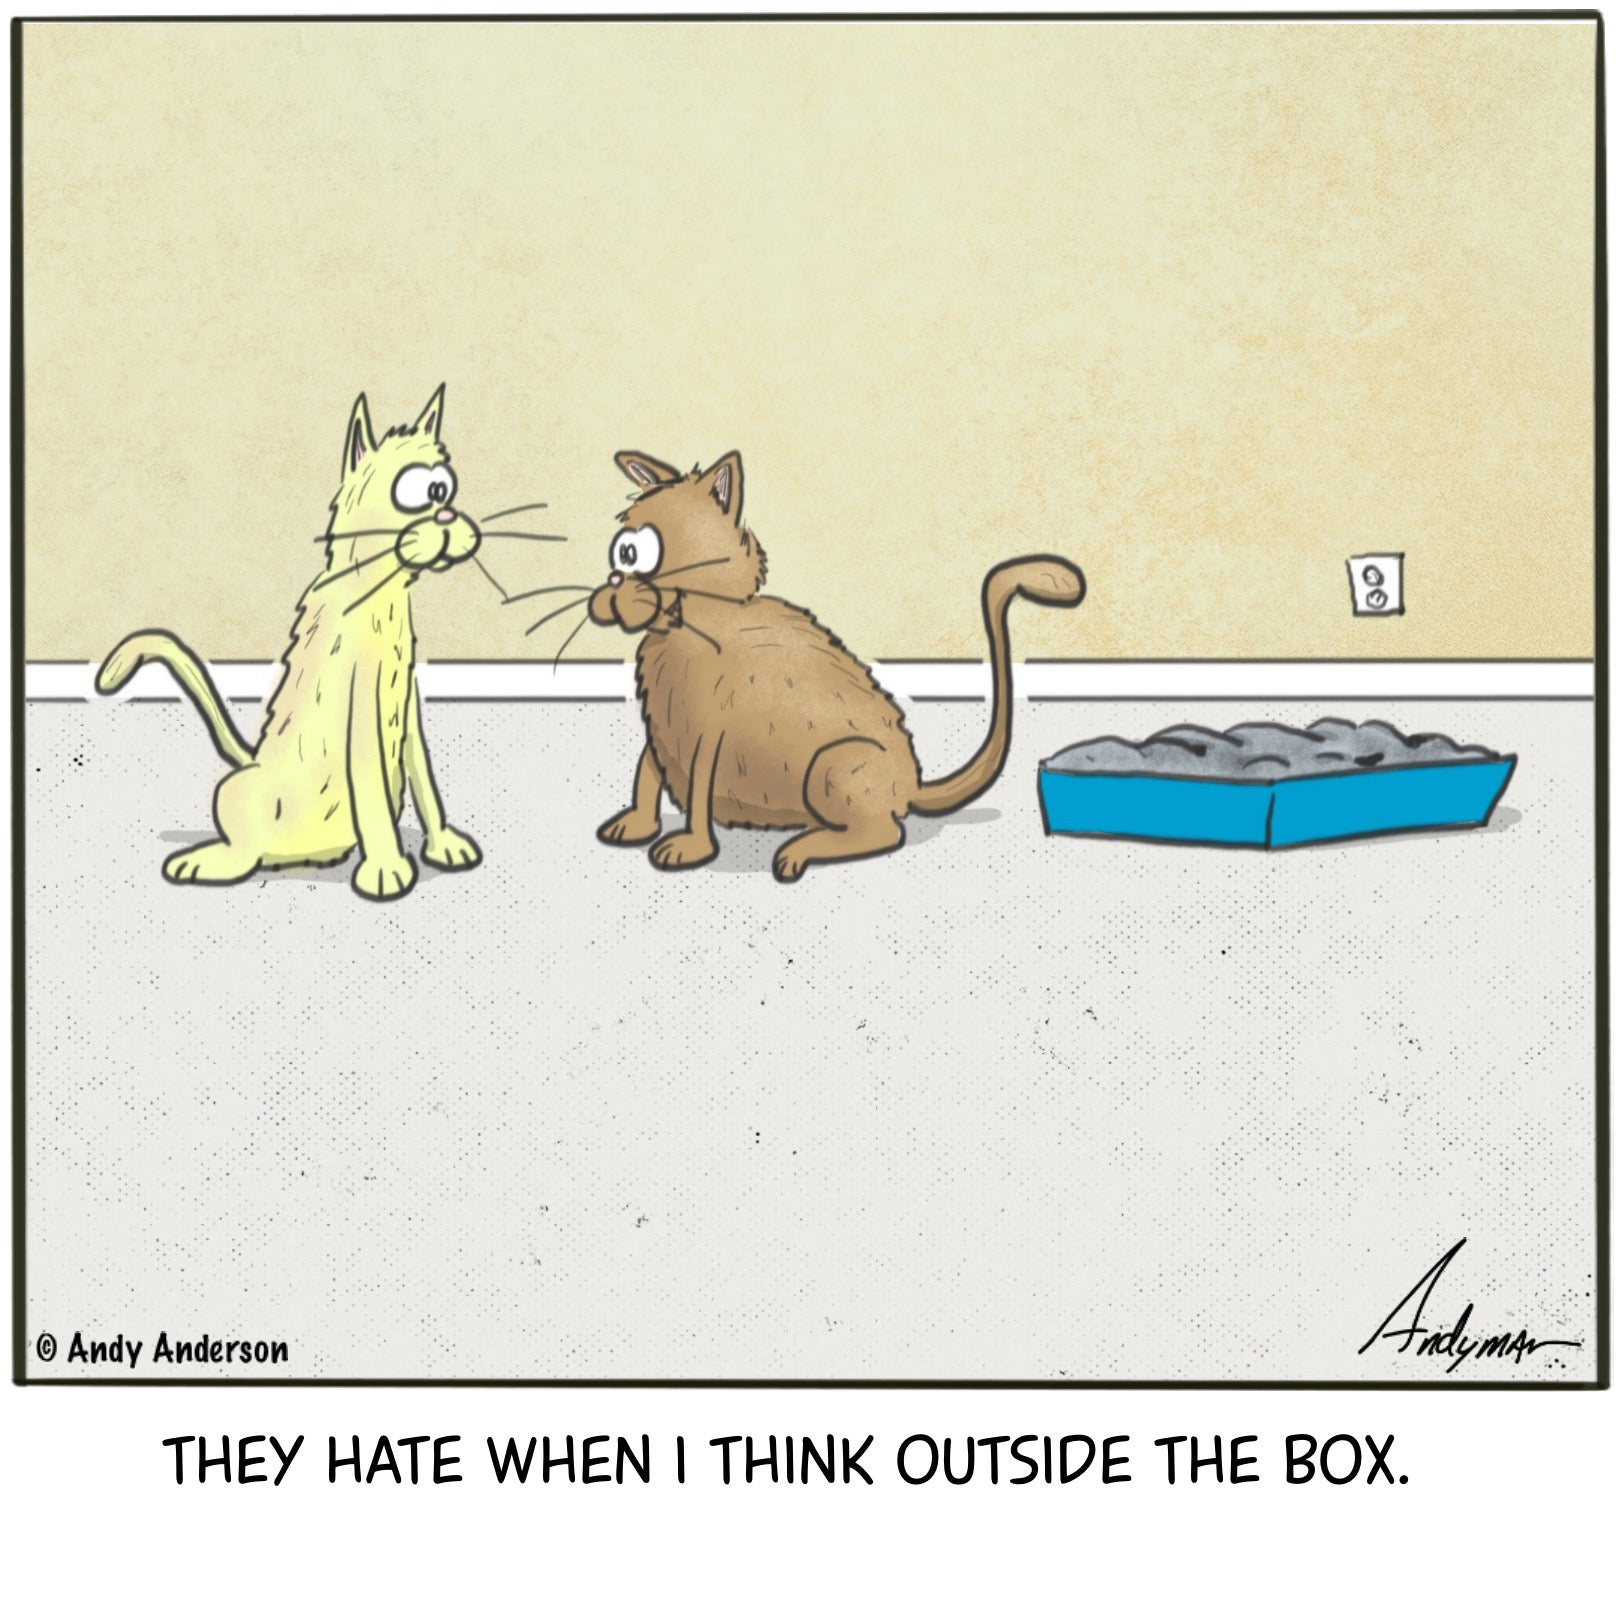 Think outside the box cartoon by Andy Anderson